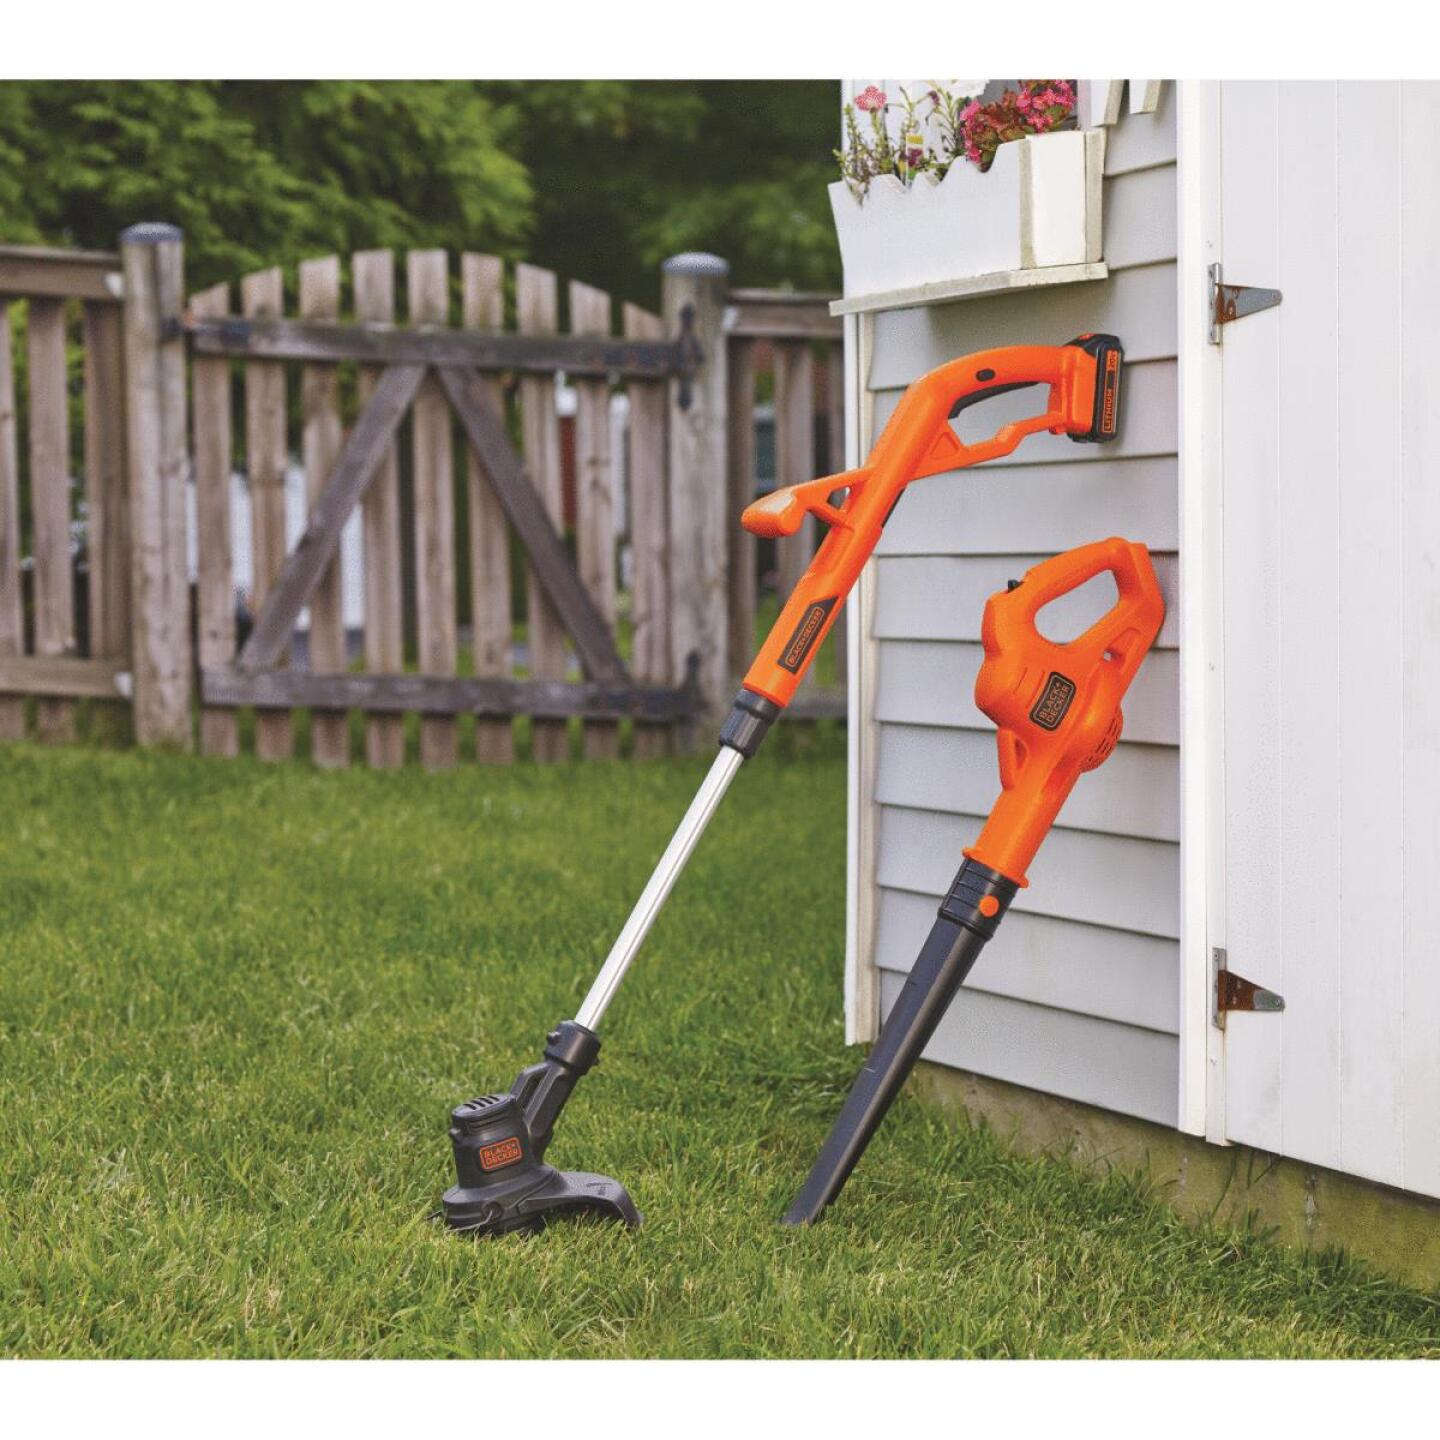 Black & Decker Max 20V String Trimmer & Sweeper Combo Kit Image 2